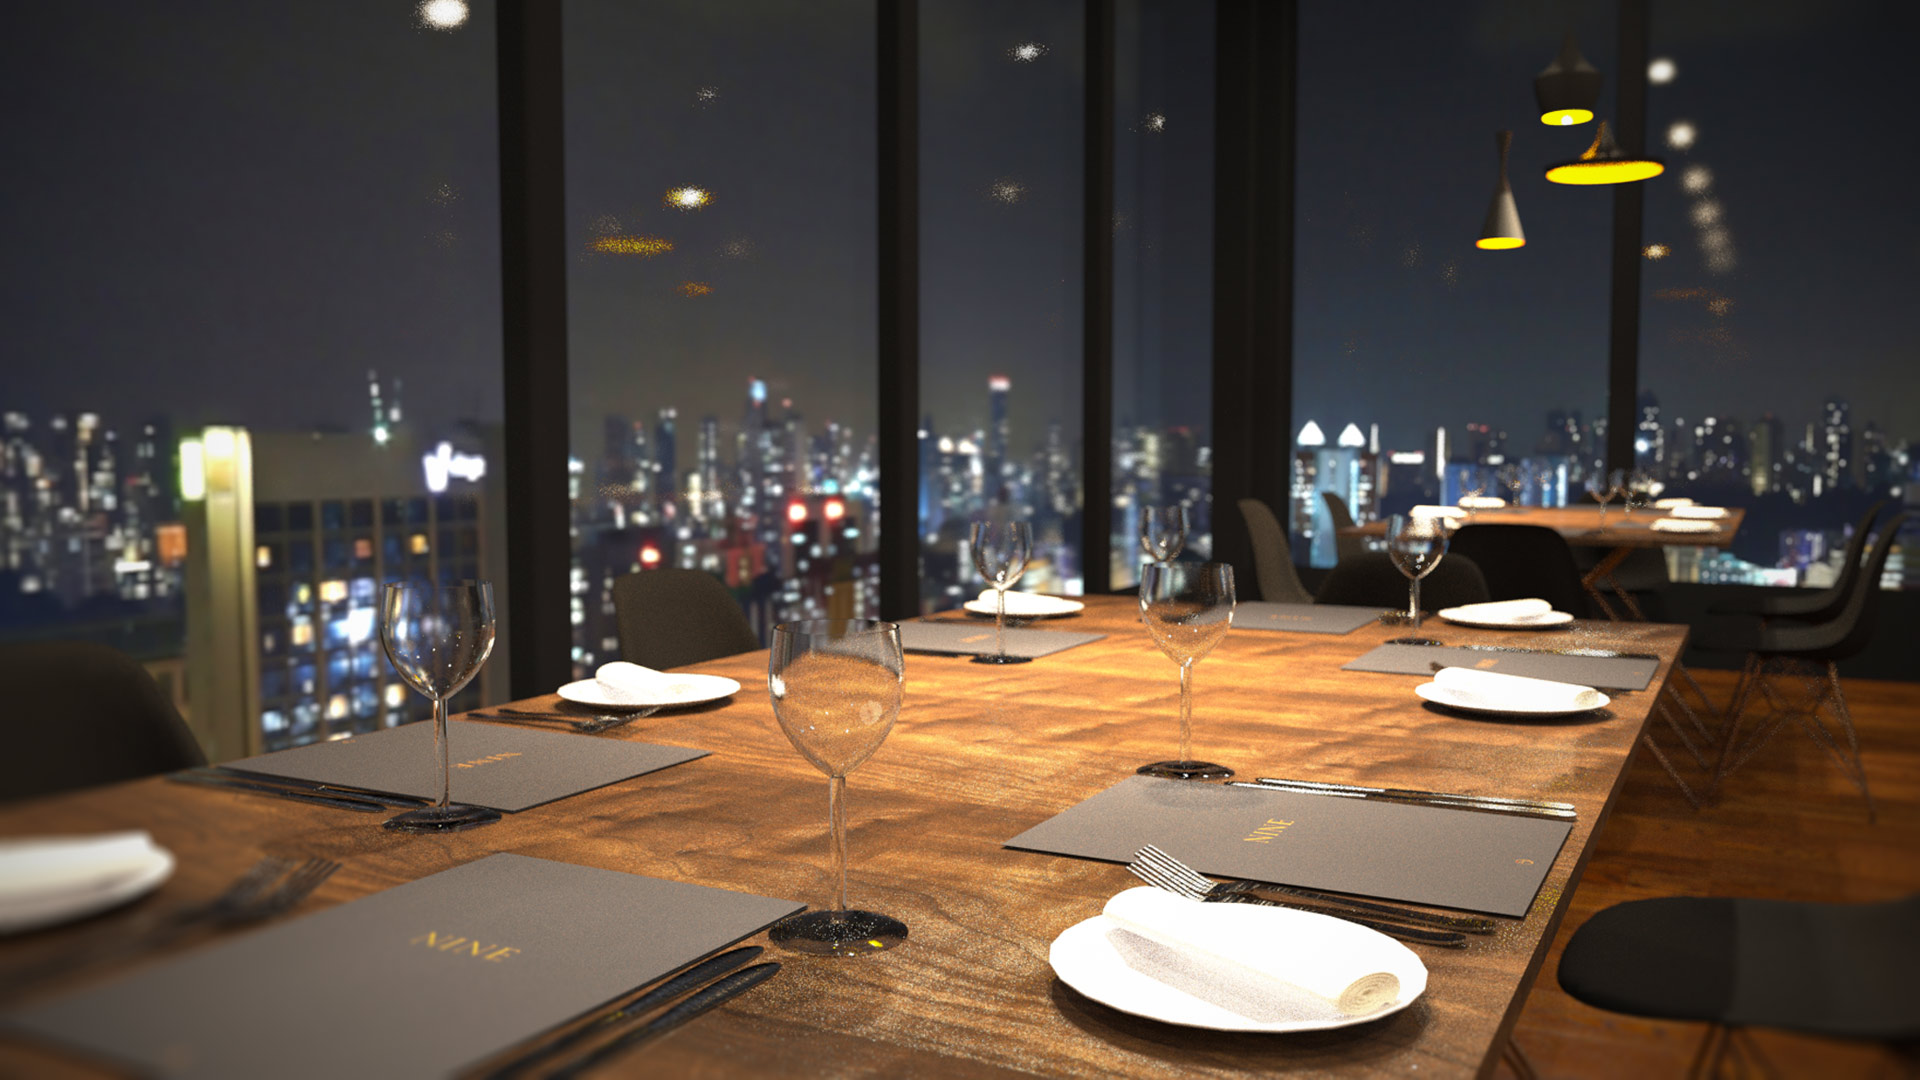 Nine luxury restaurant interior design